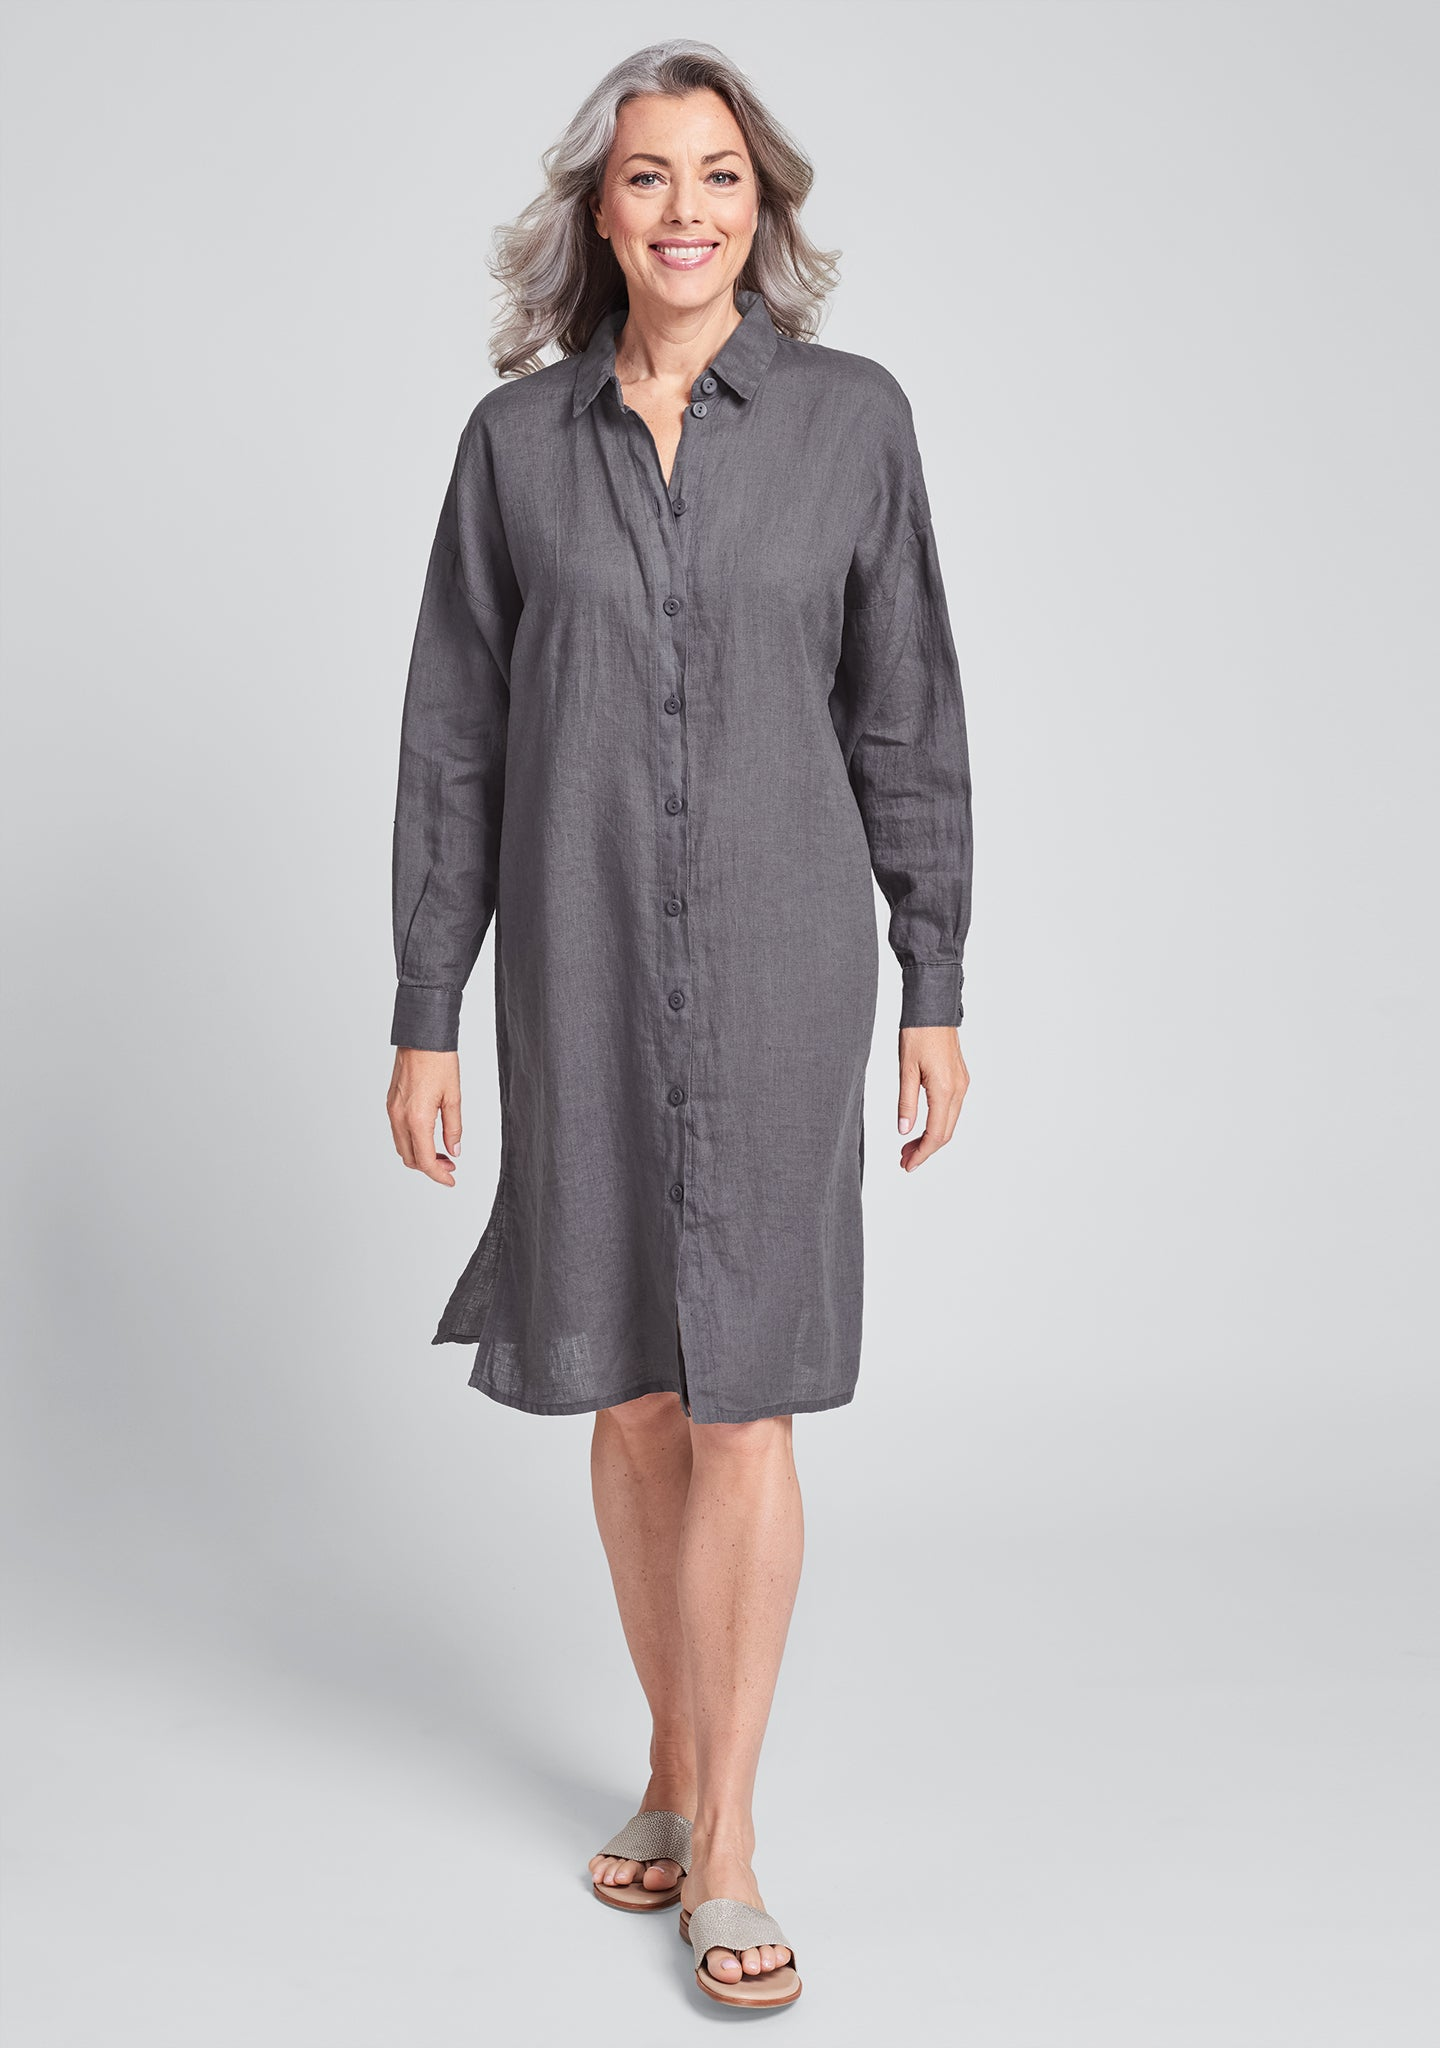 shirtdress linen shirt dress grey